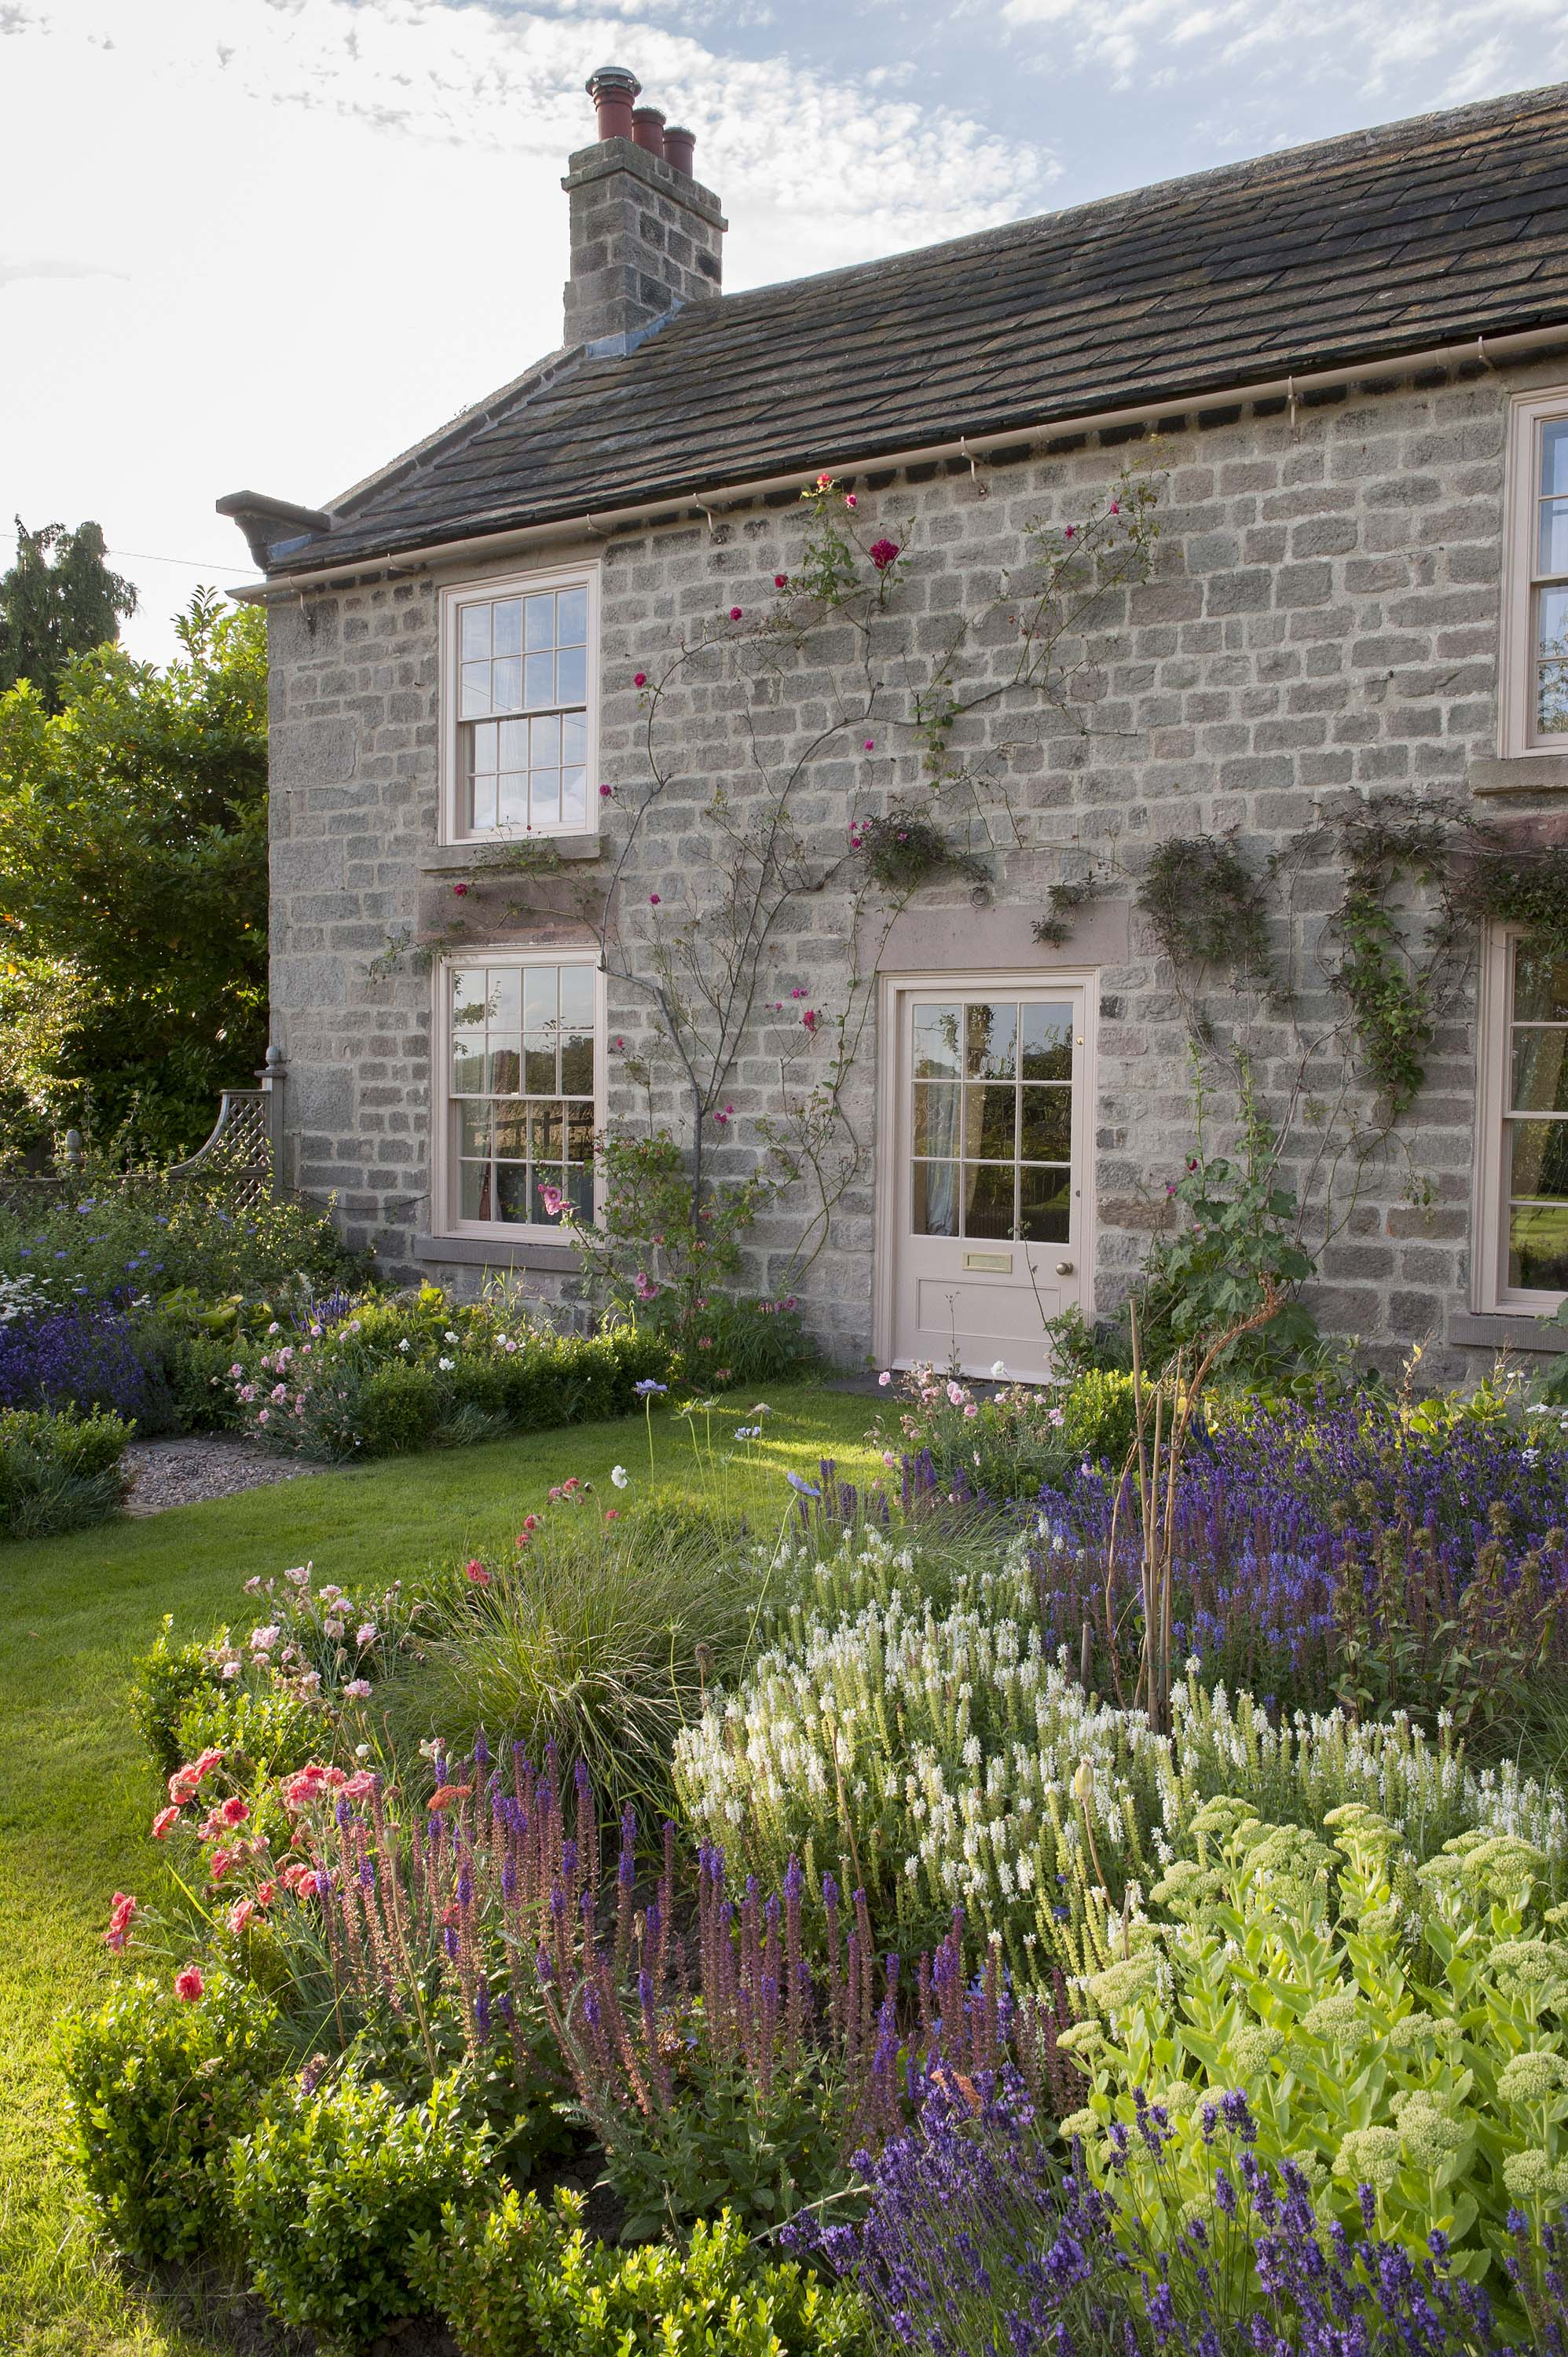 New cottage garden planting with Veronicas, Dianthus, Salvias and Lavender.